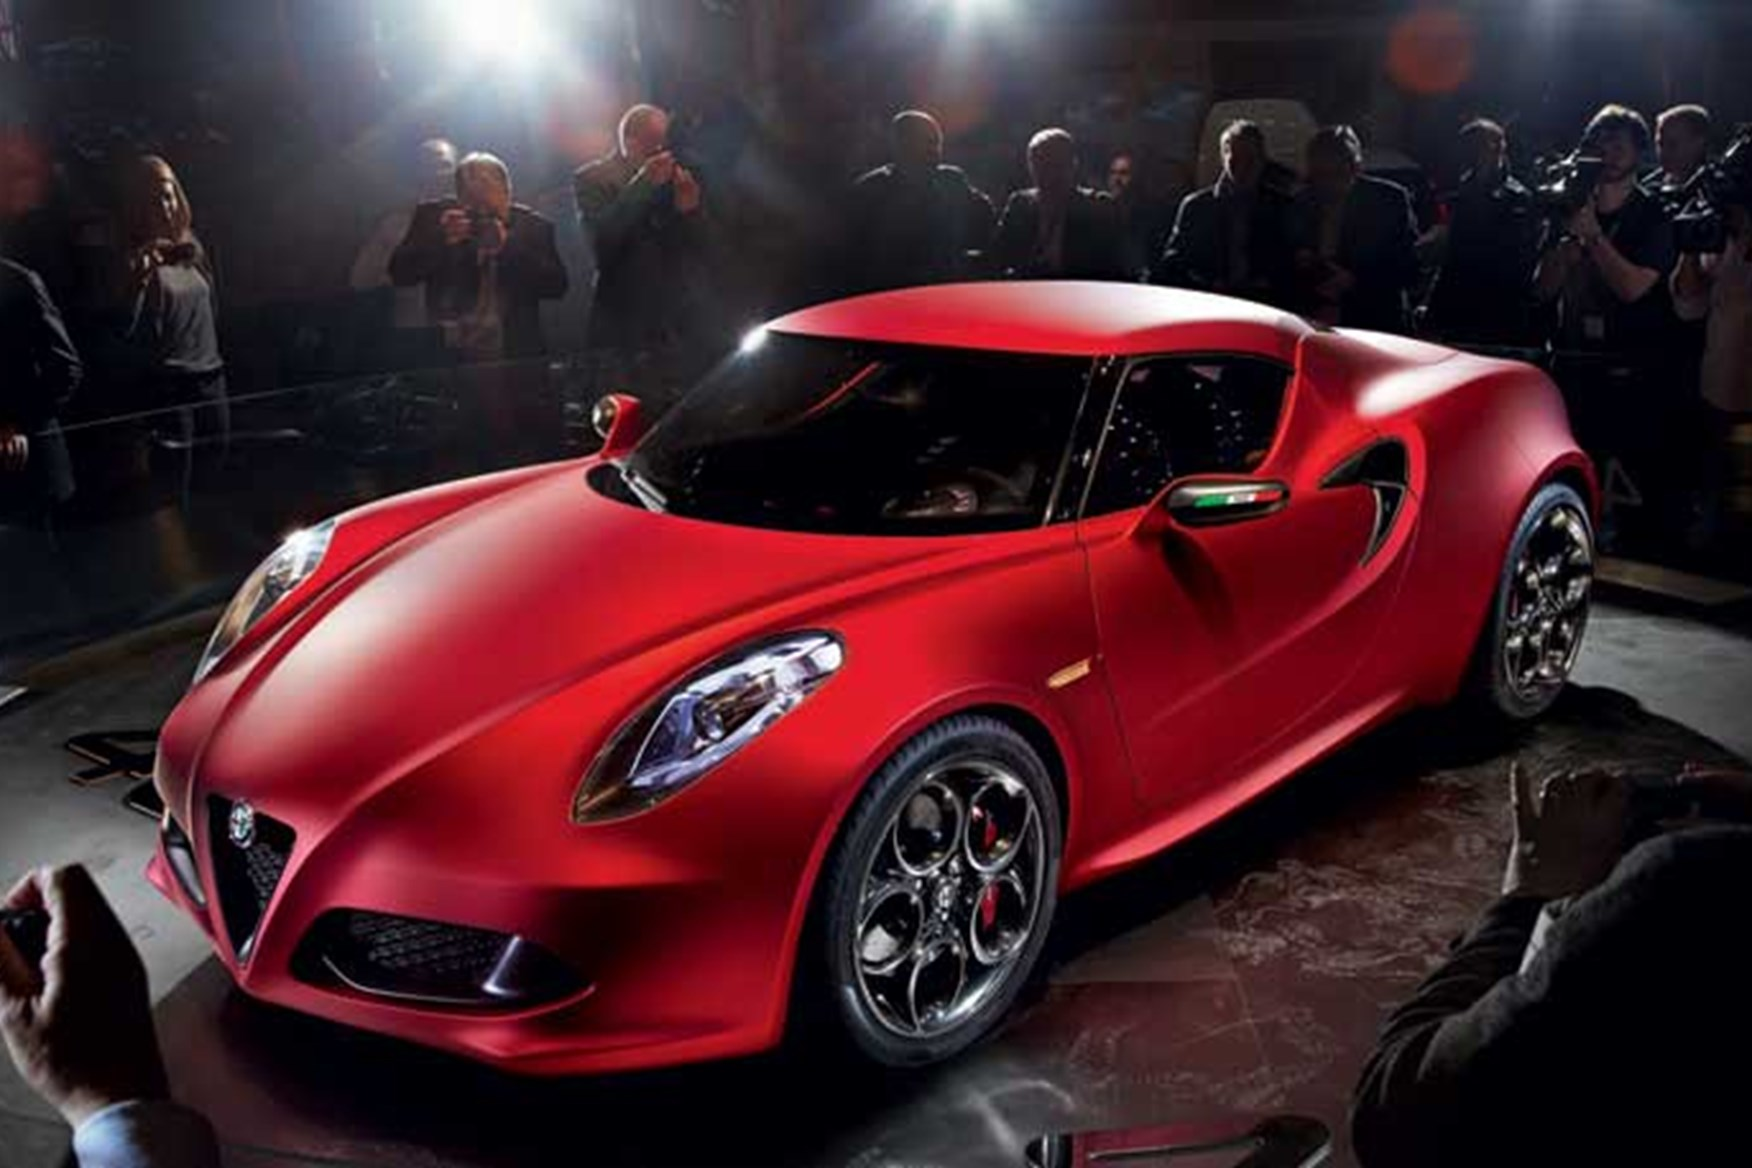 Alfa Romeo 4c Engine Diagram Data Wiring Diagrams \u2022 Alfa Romeo 147 Jtd  Engine Diagram Alfa Romeo Engine Diagram